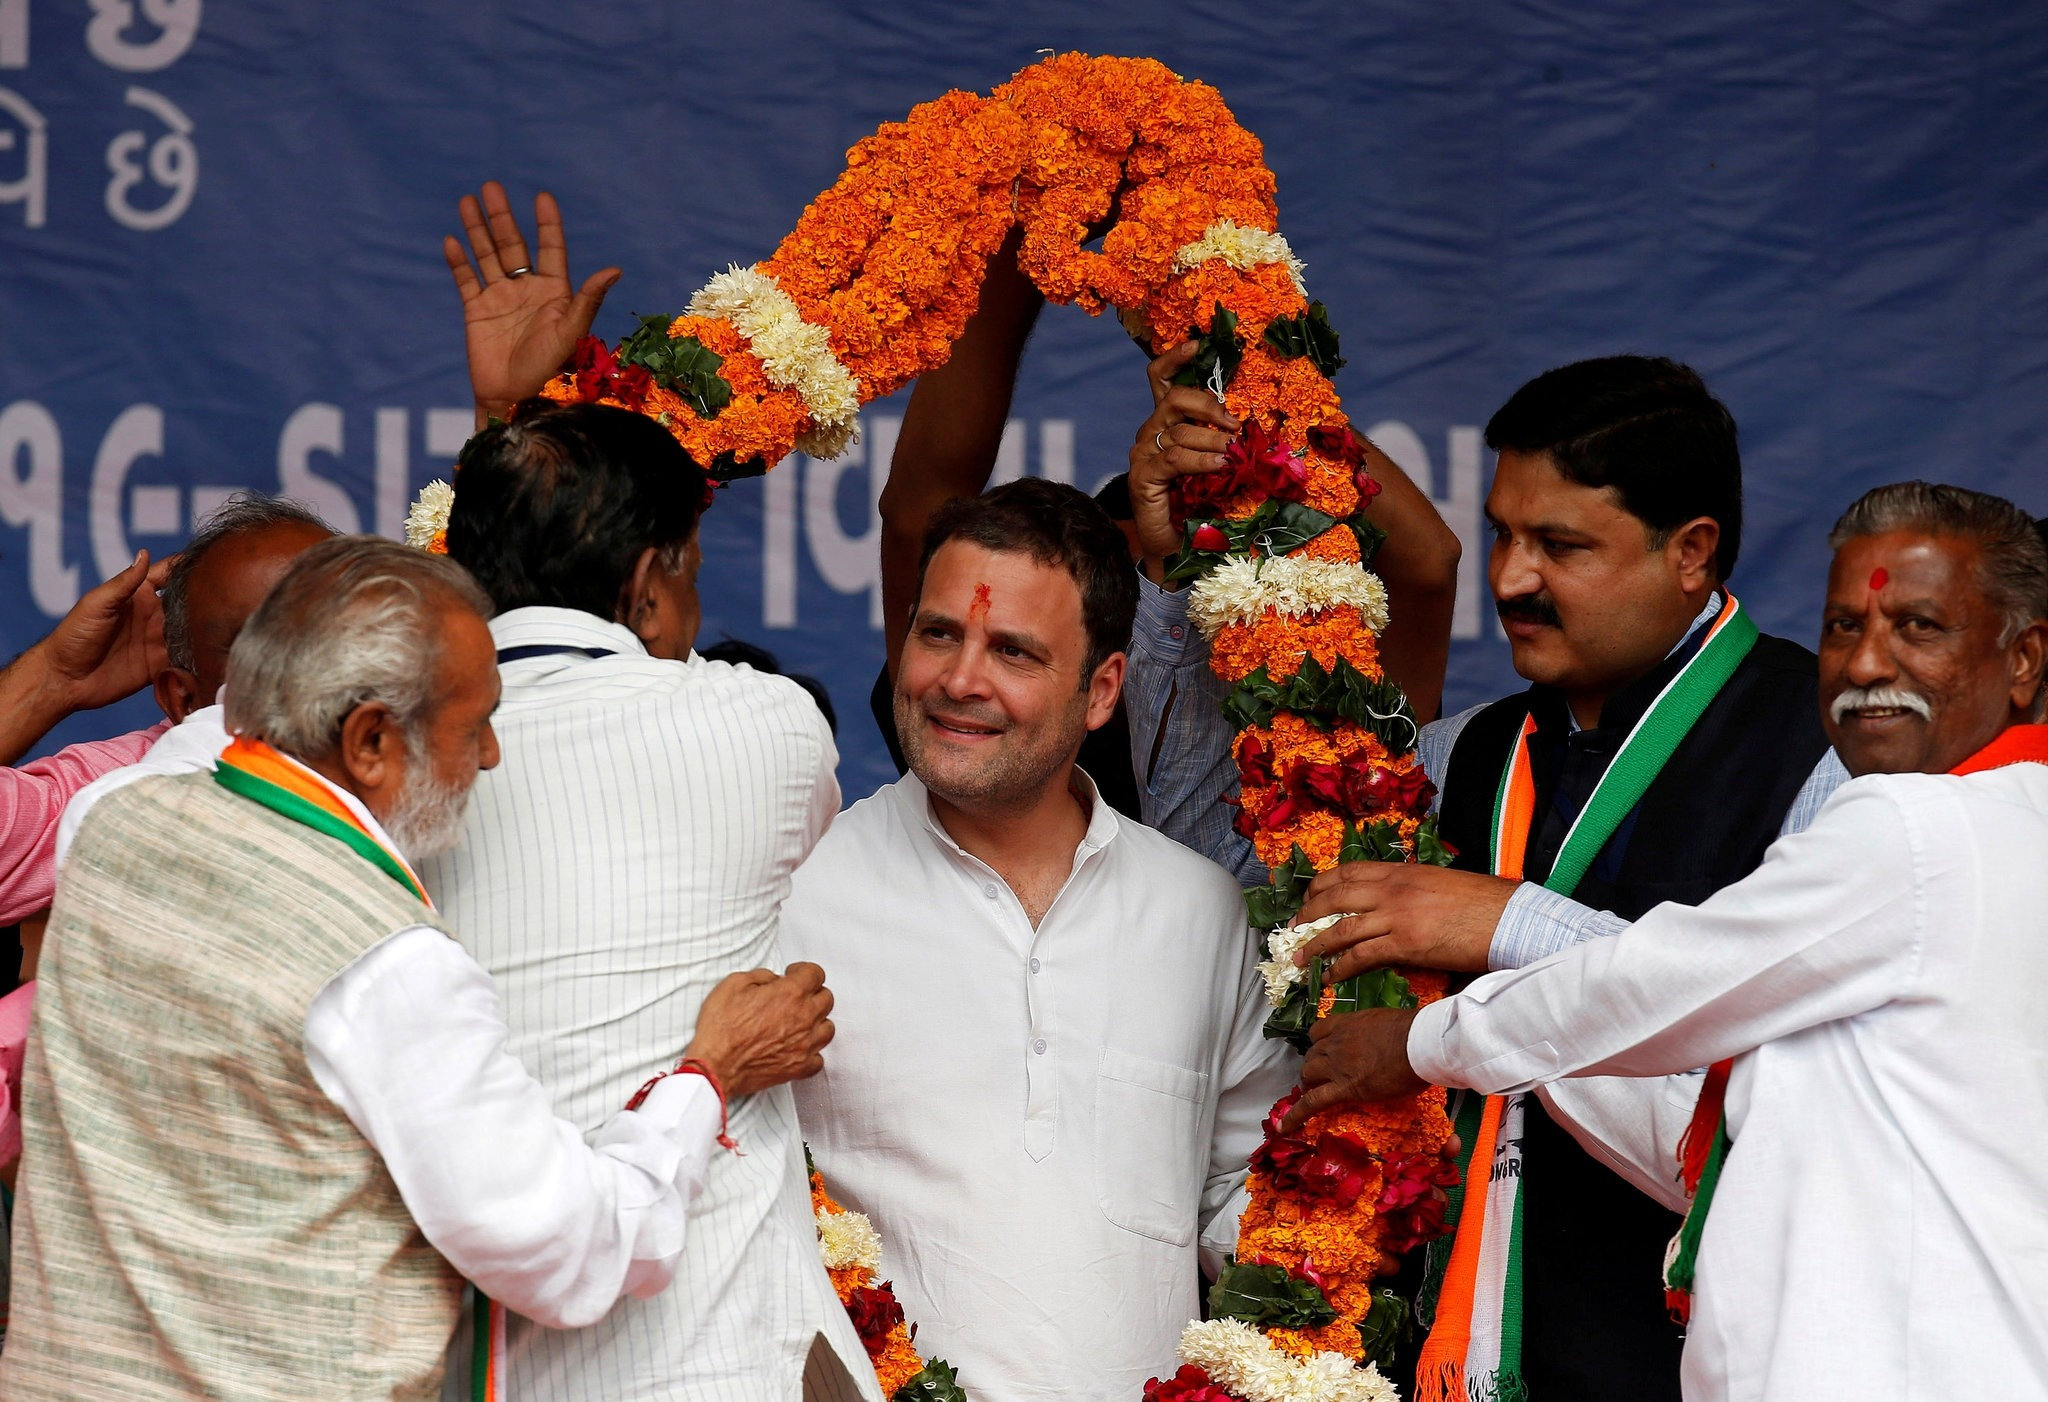 Rahul Gandhi, Vice-President of India's main opposition Congress Party, is garlanded by supporters during an election campaign meeting ahead of the second phase of Gujarat state assembly elections, in Dakor, India, December 10, 2017. (Reuters Photo)